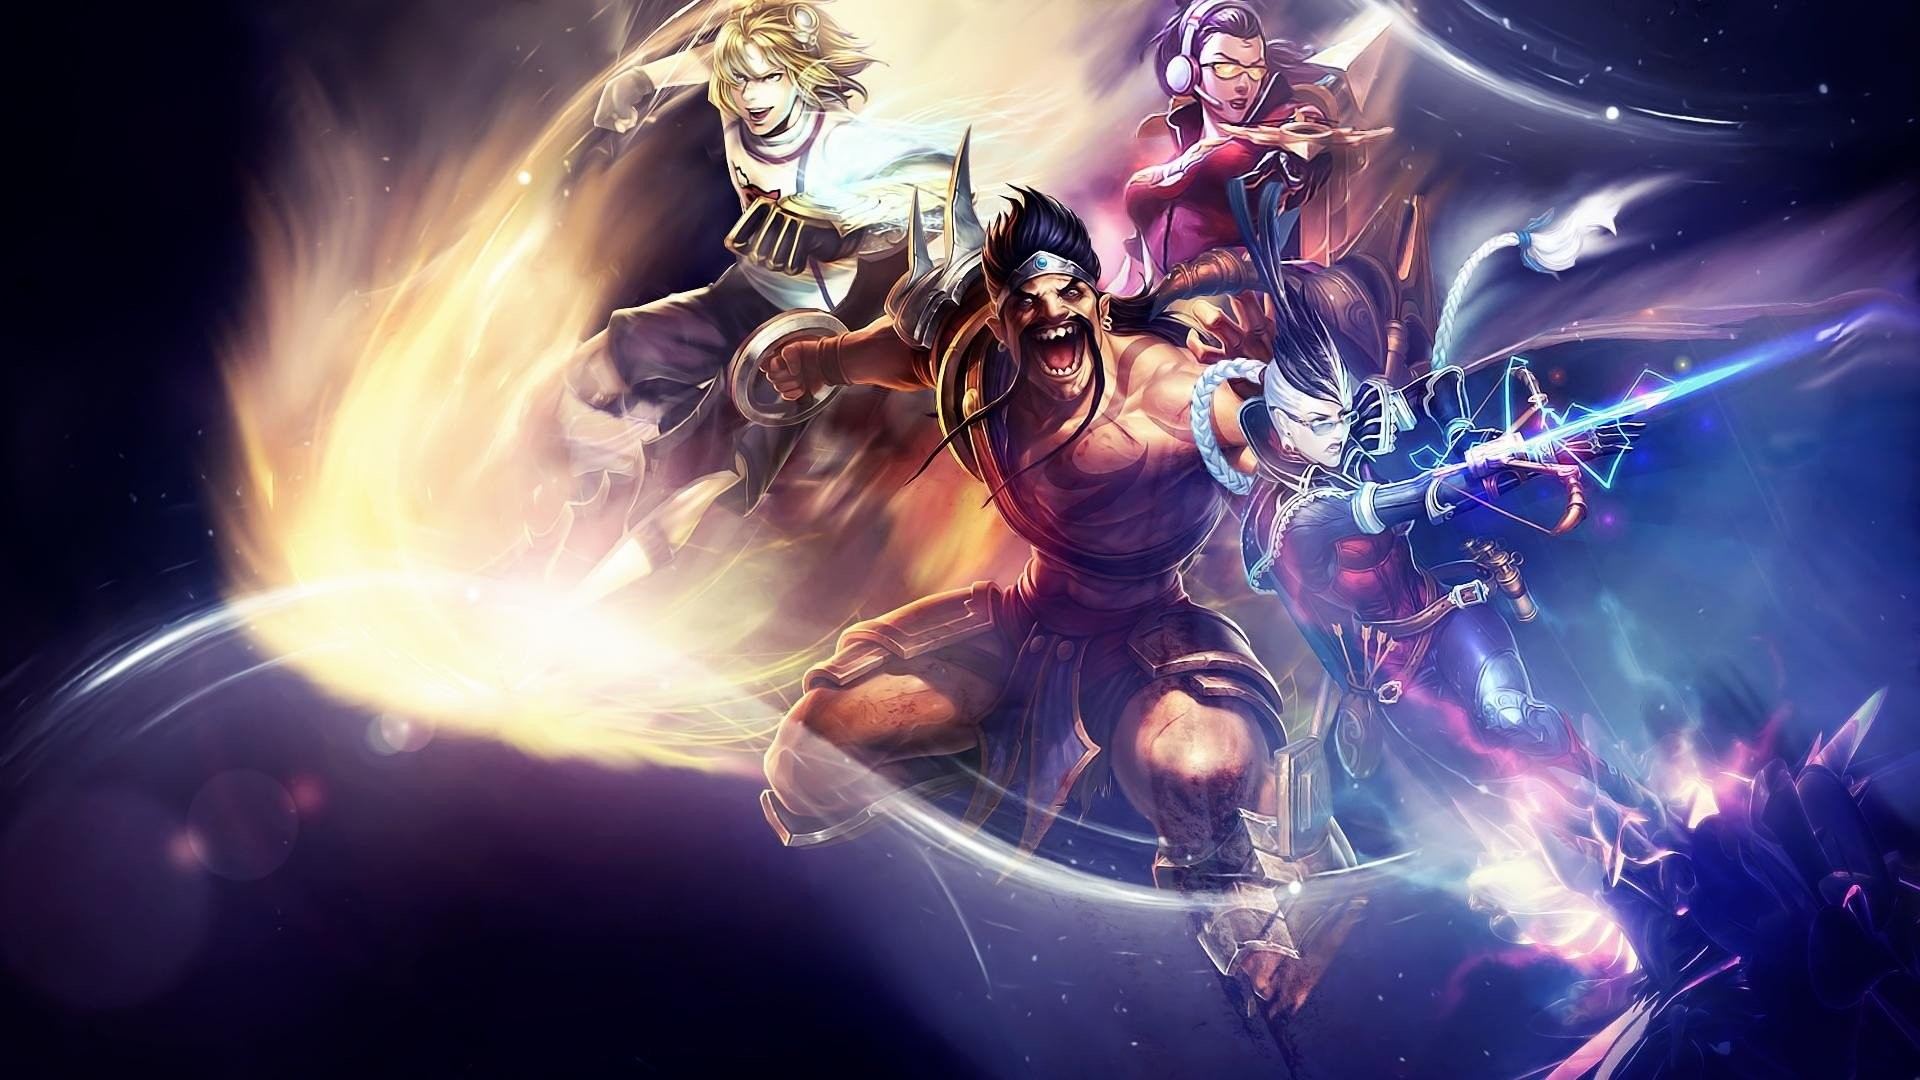 1920x1080 League of legends draven vayne ezreal.